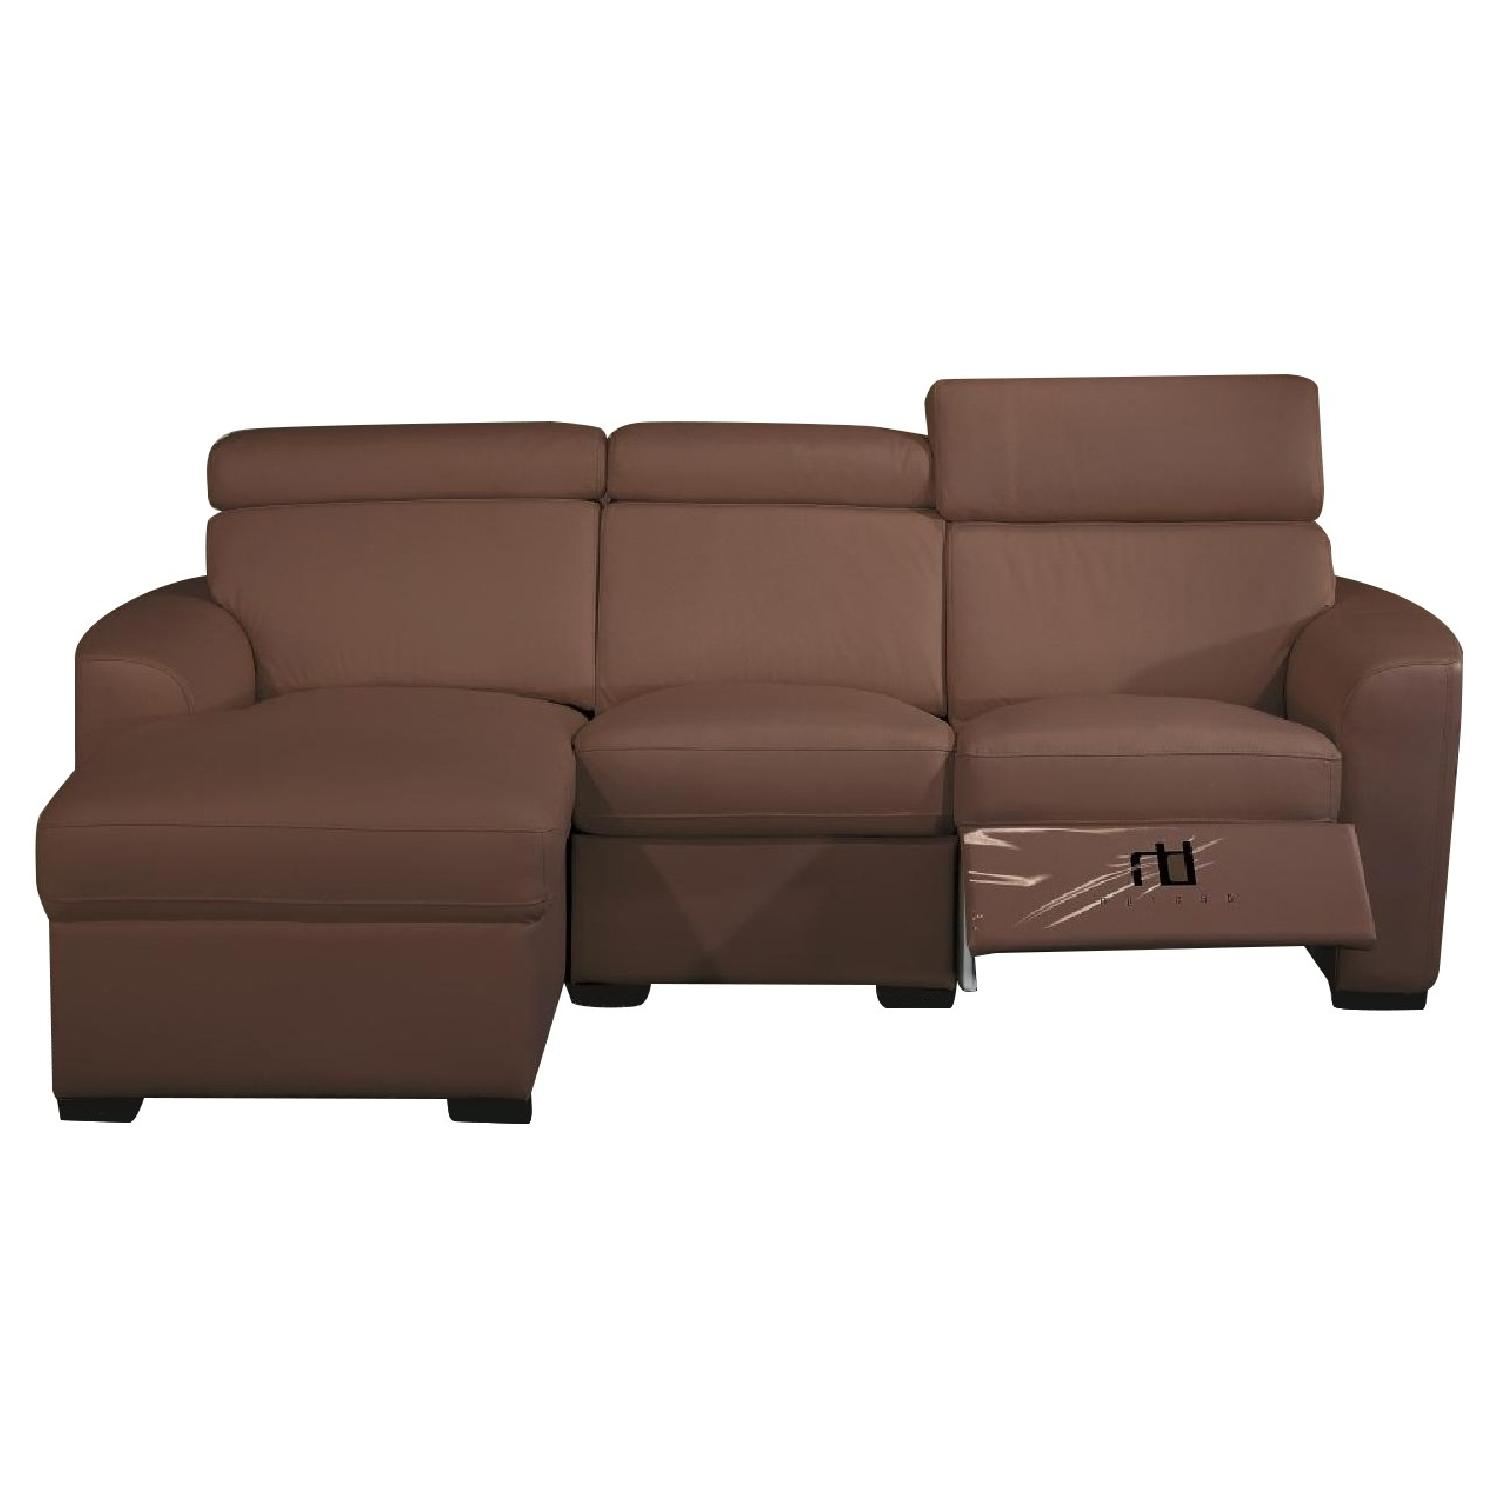 Macy s Milano Brown Leather Sectional Sofa AptDeco